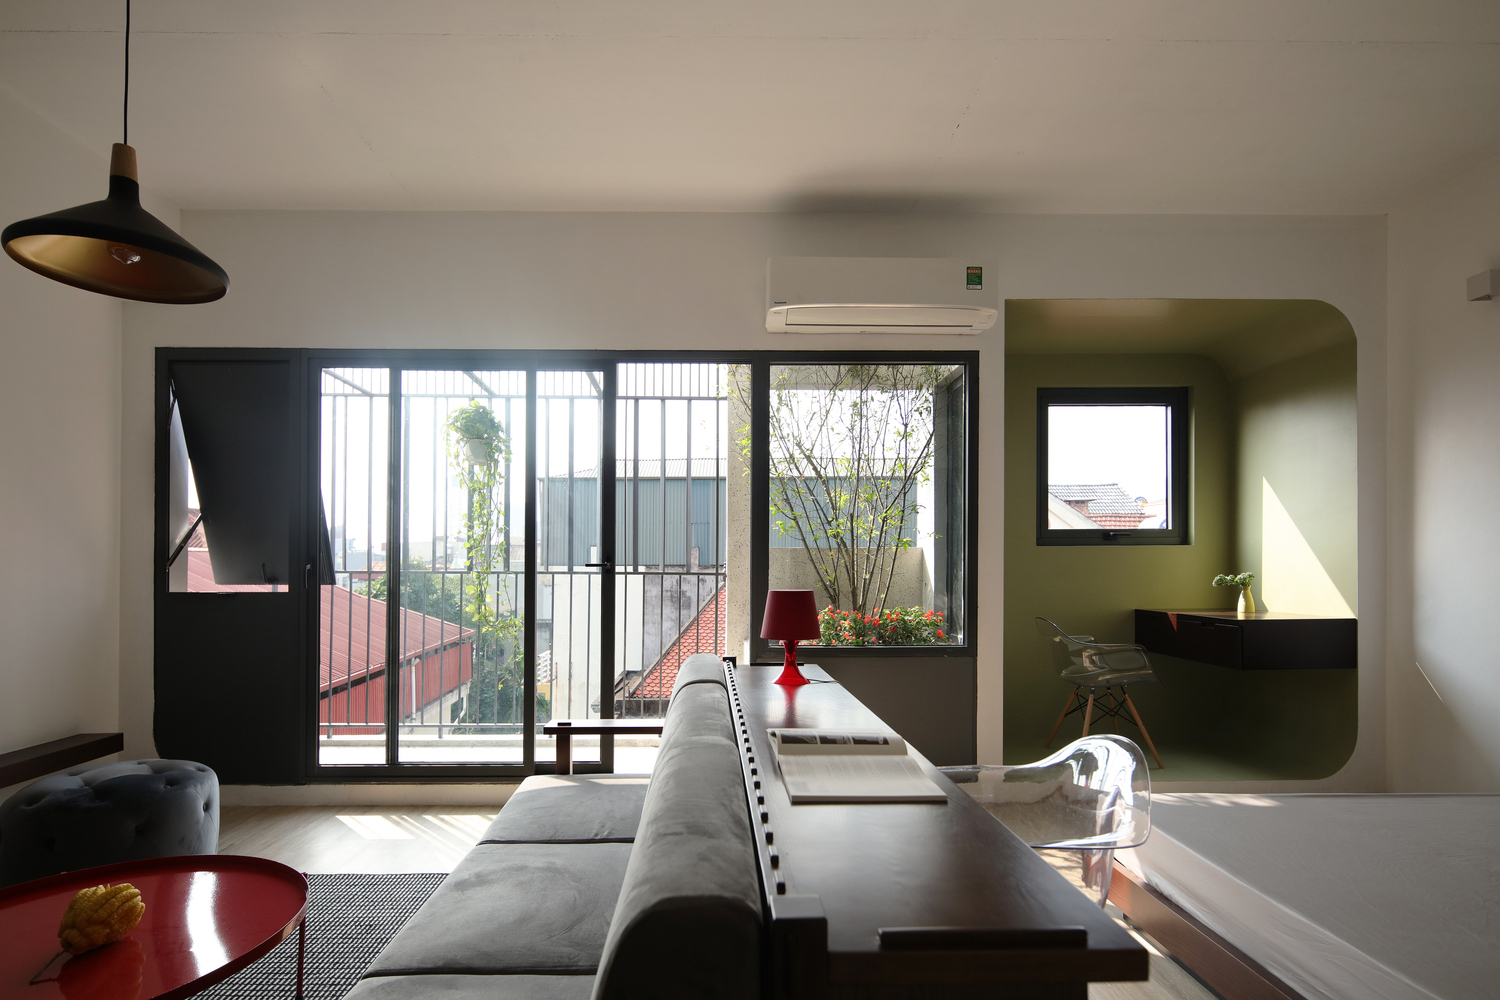 09_vuuv_jasmin_house_lavender_apartment_(can_be_fetured_imaged)